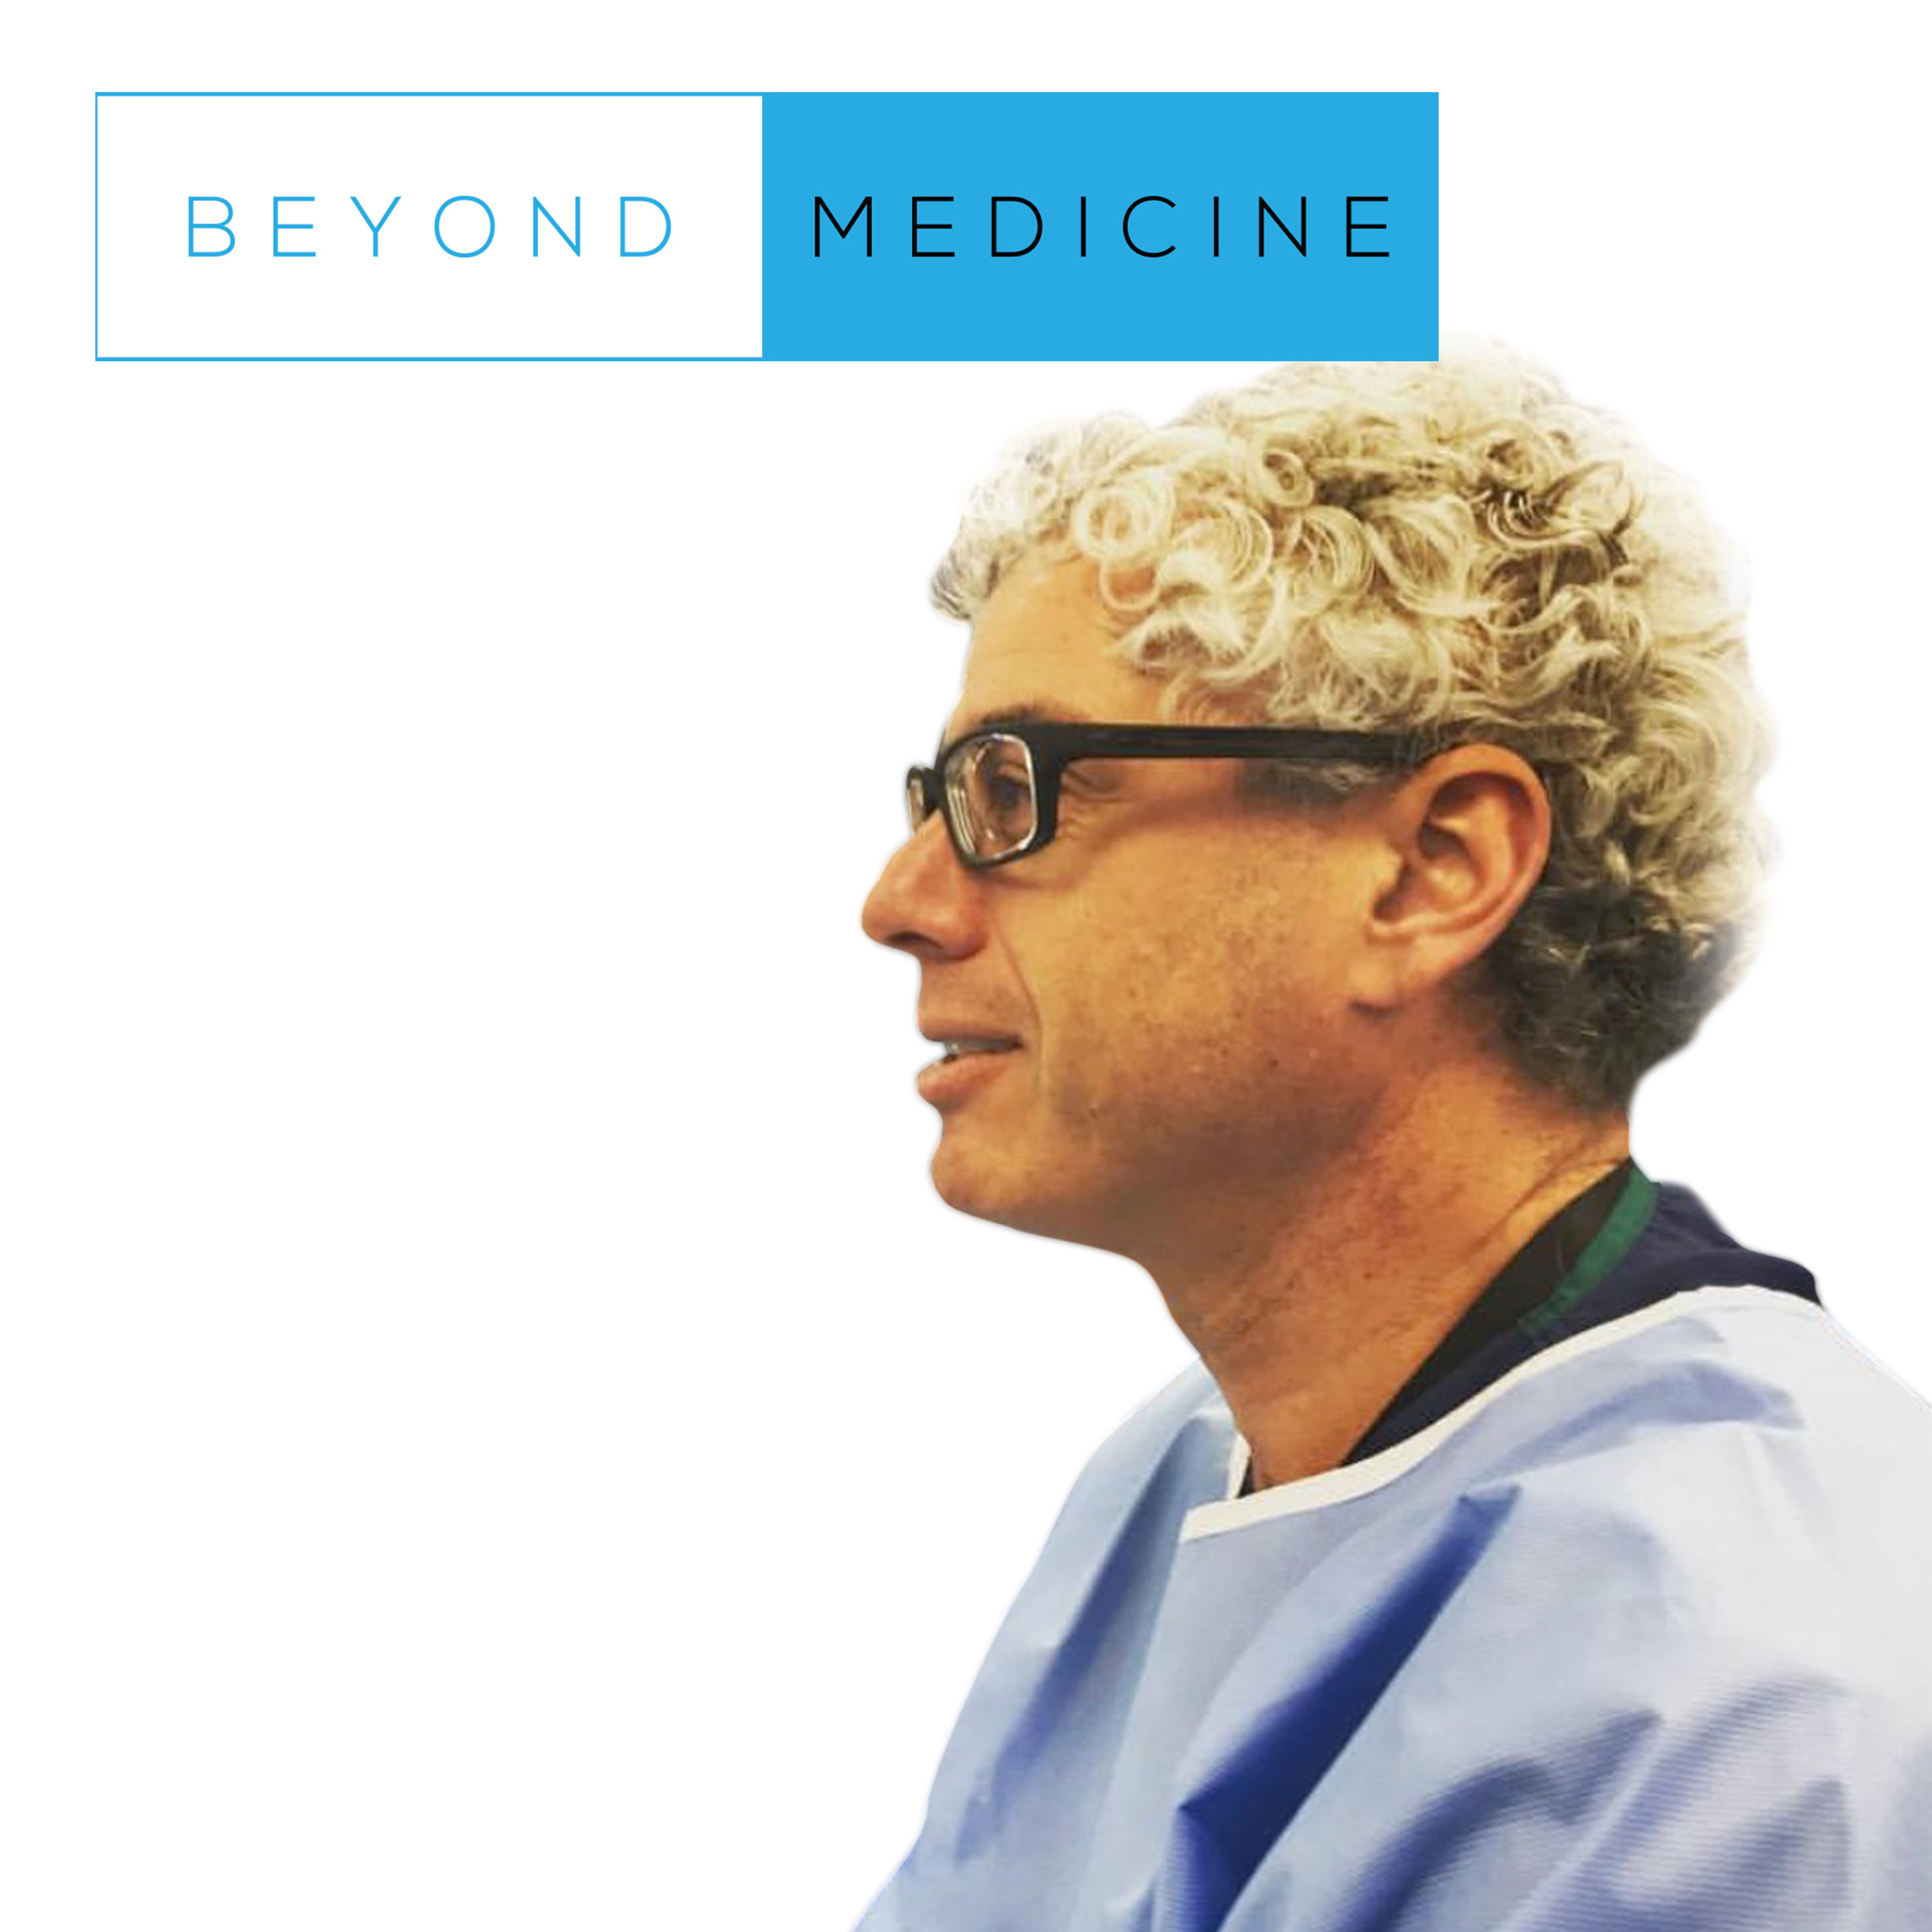 Saving America From Opioids - Dr. Scott Sigman, MD - A Fellowship trained Opioid Sparing Sports Orthopedic Surgeon and global proponent for the minimization of opioids in post-operative pain,talks with us on America's struggles with opioids and how we got to this point.